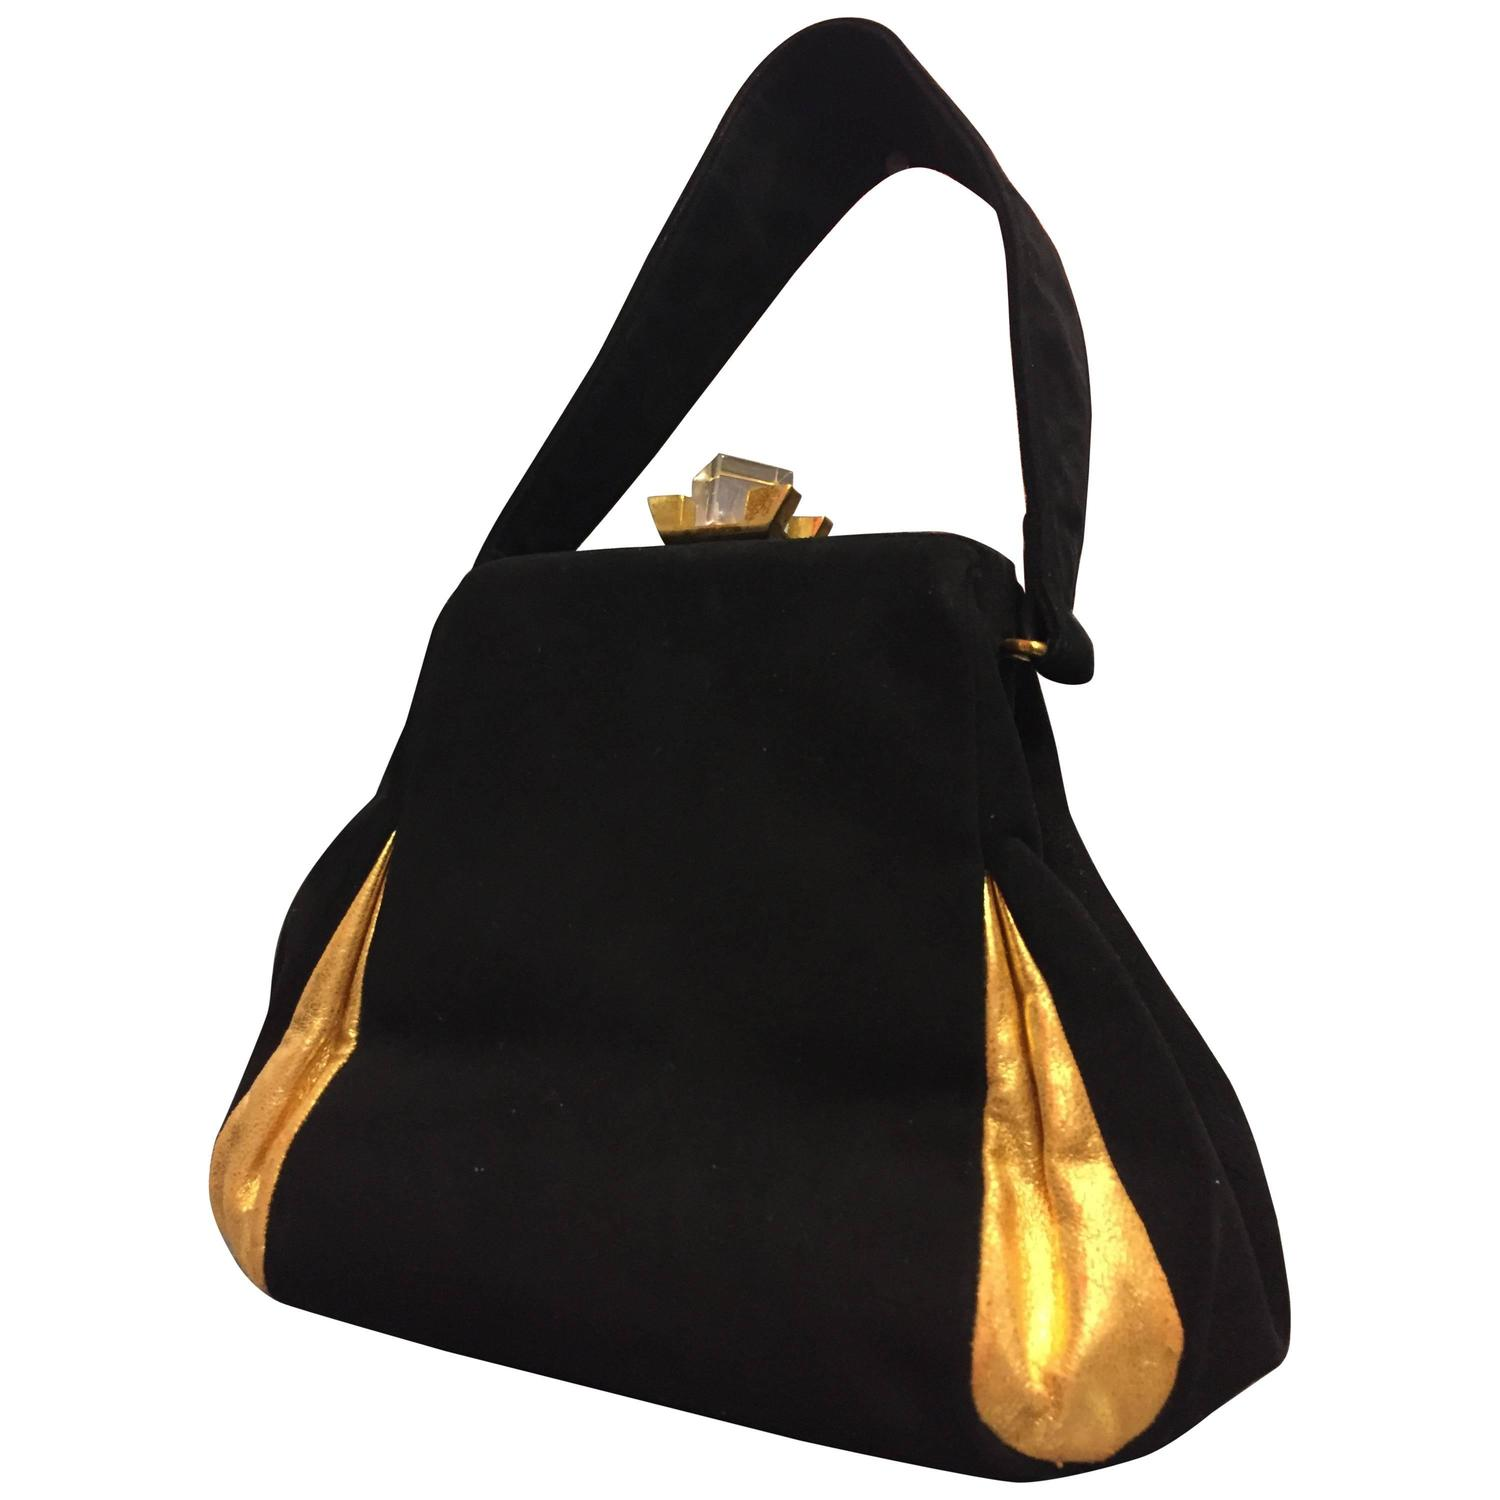 02b86628ea43 Theodor black suede and gold gilt leather handbag lucite clasp for sale at  stdibs jpg 1500x1500